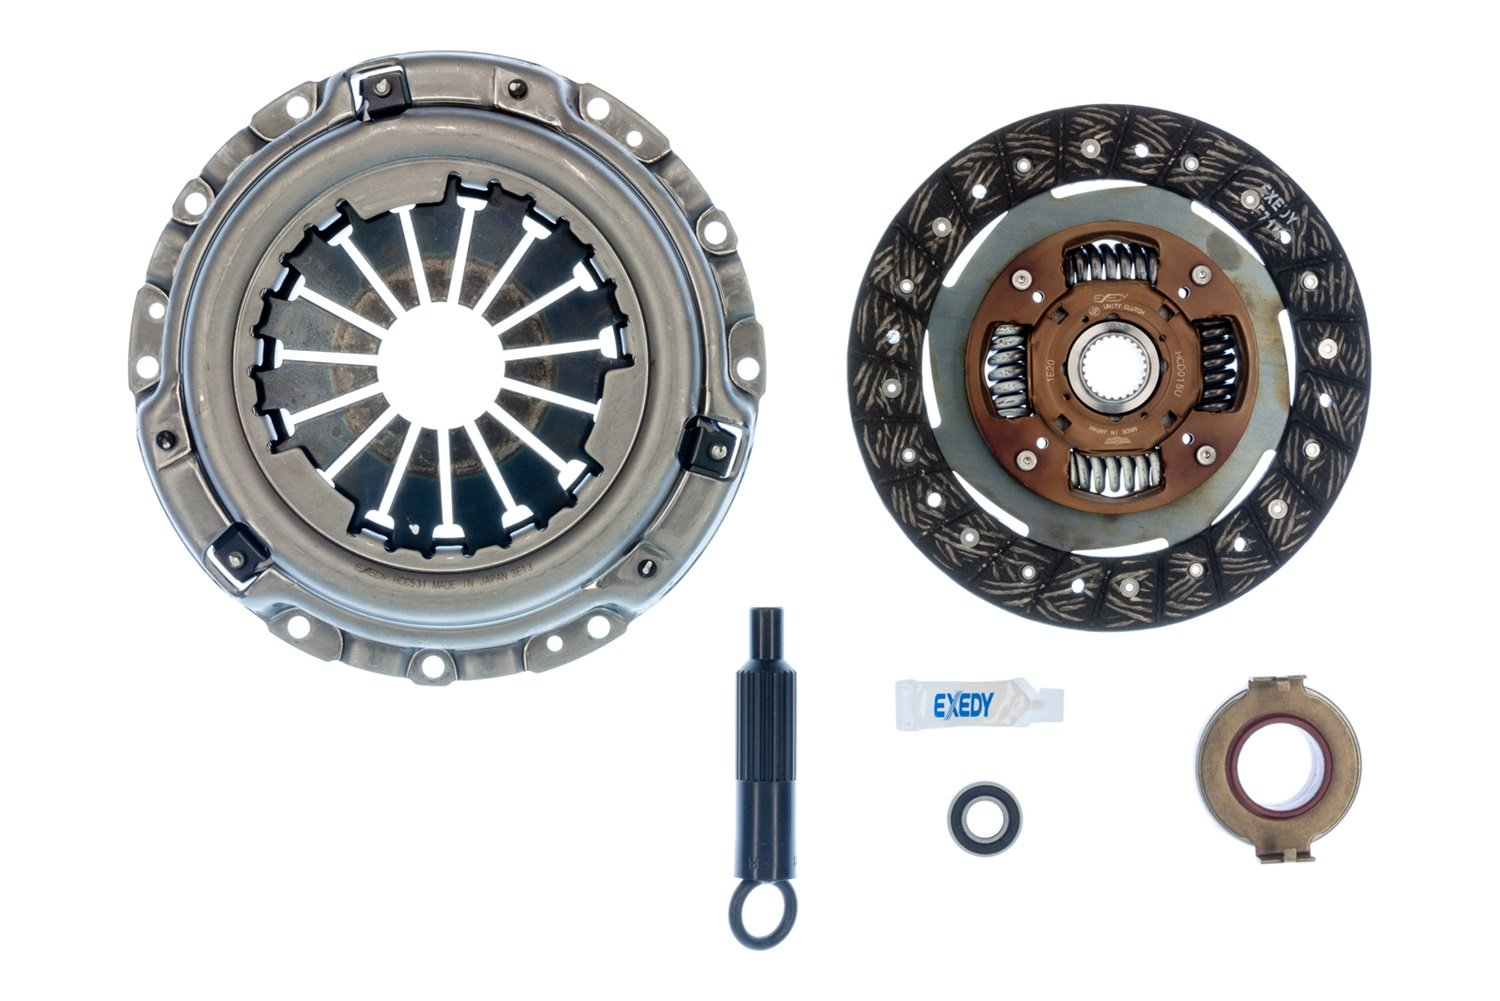 EXEDY KHC05 OEM Replacement Clutch Kit by Exedy